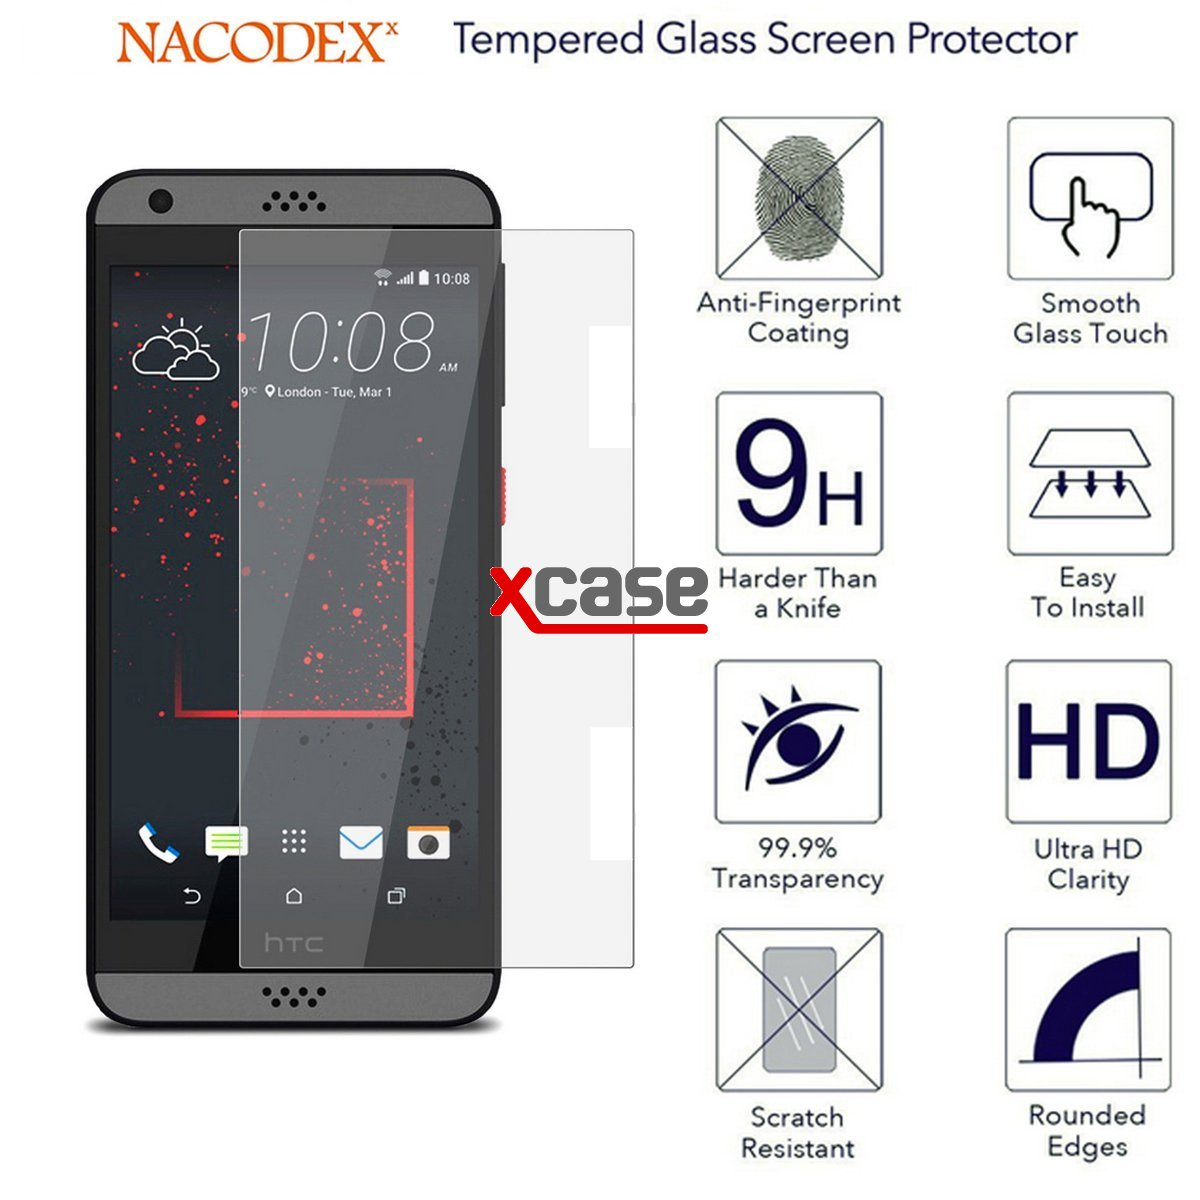 October 2014 olixar htc desire 530 630 tempered glass screen protector off and